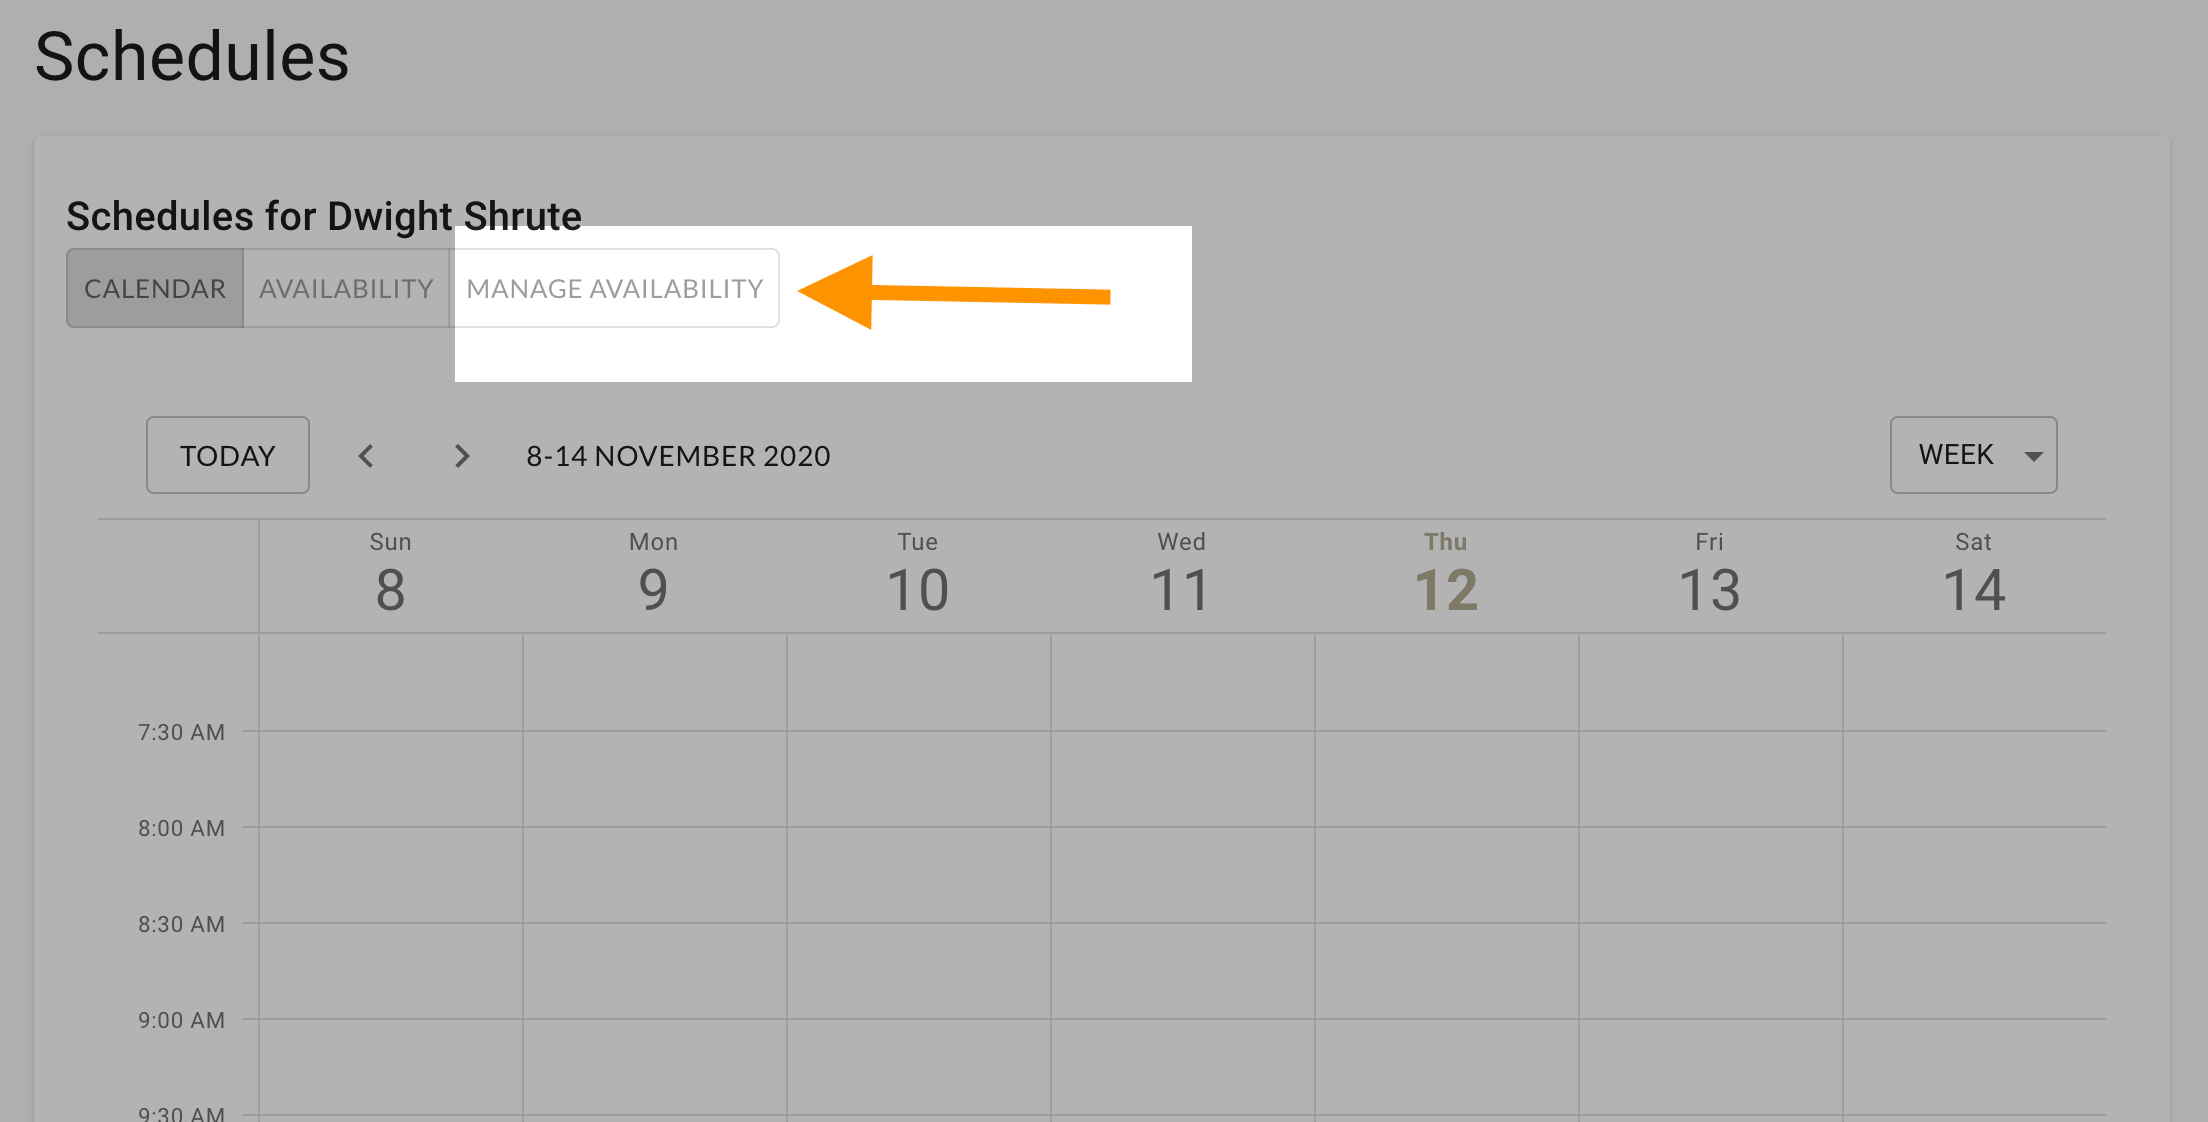 Go to manage availability to create a schedule